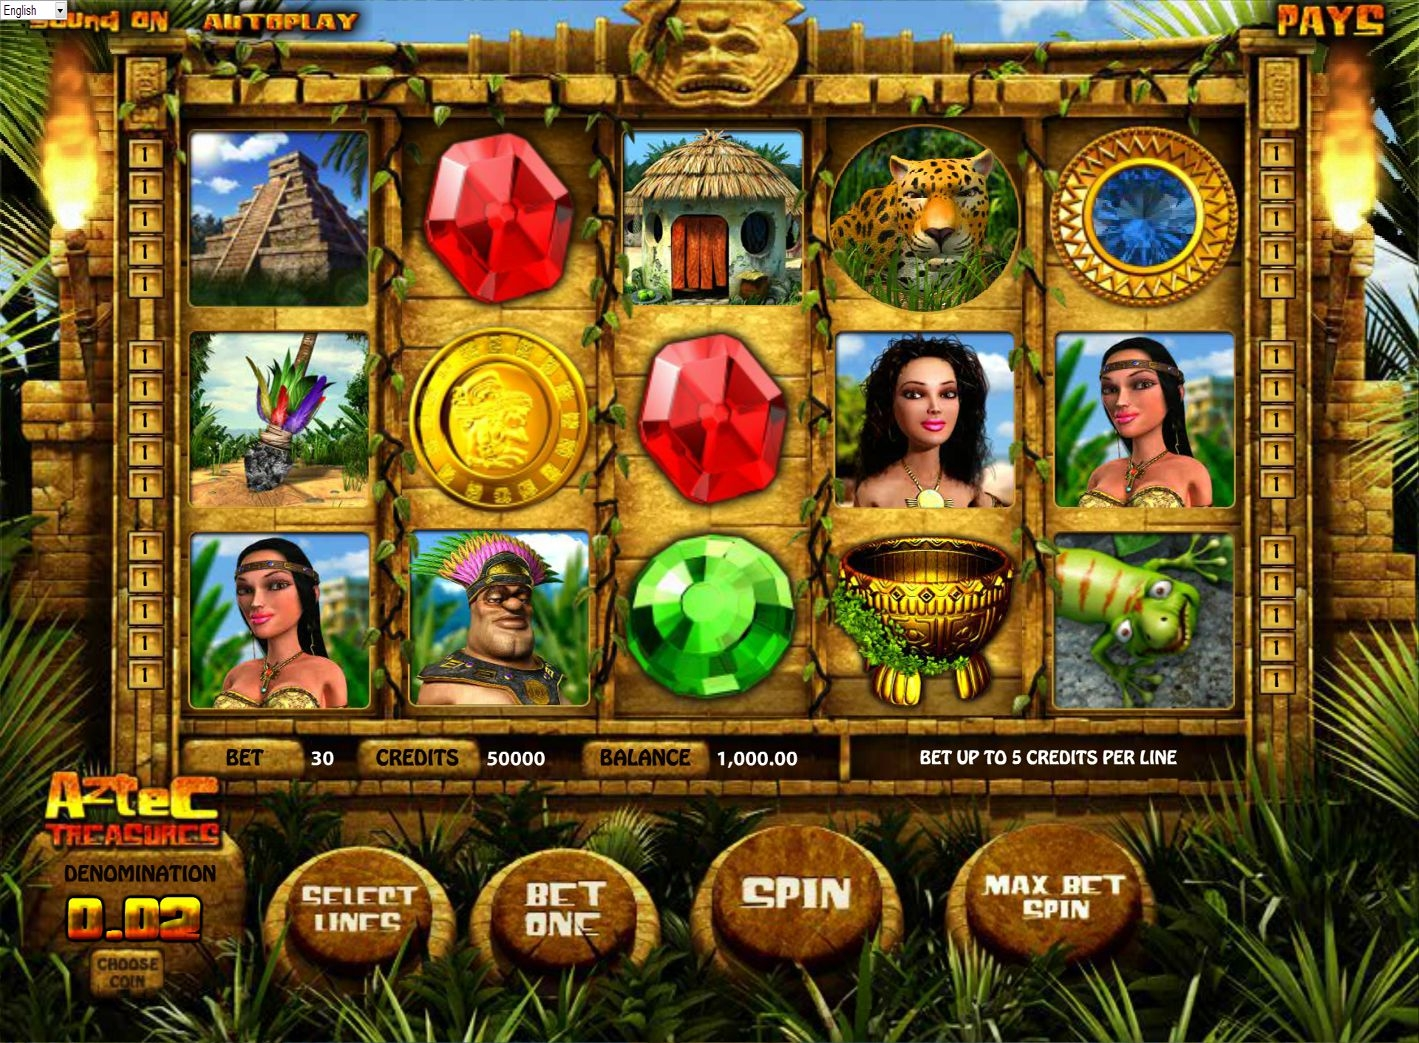 Aztec Glory Slot Machine - Review and Free Online Game